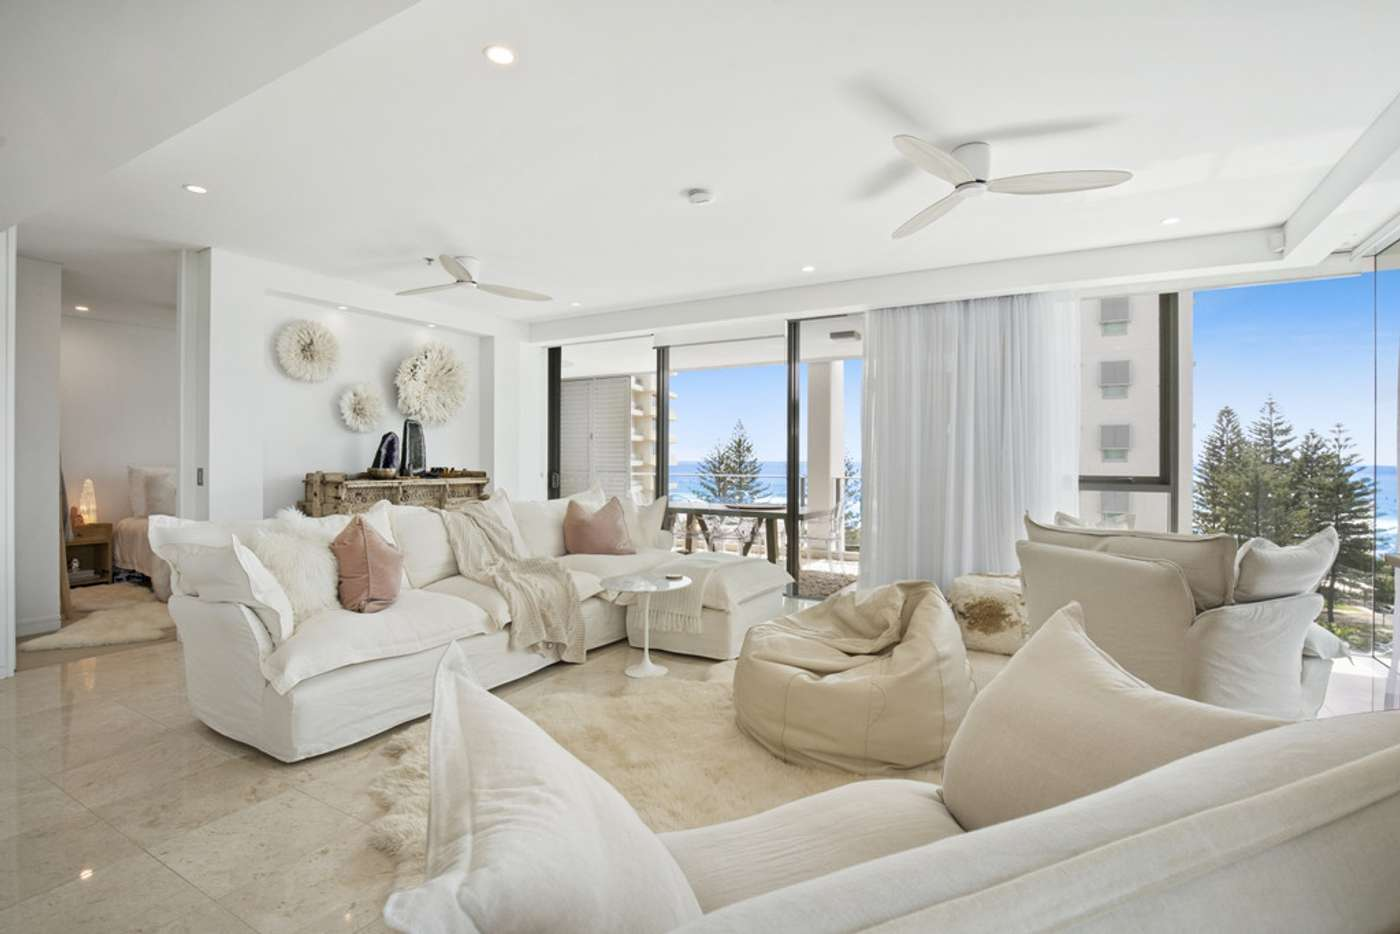 Main view of Homely apartment listing, 13/106 The Esplanade, Burleigh Heads QLD 4220